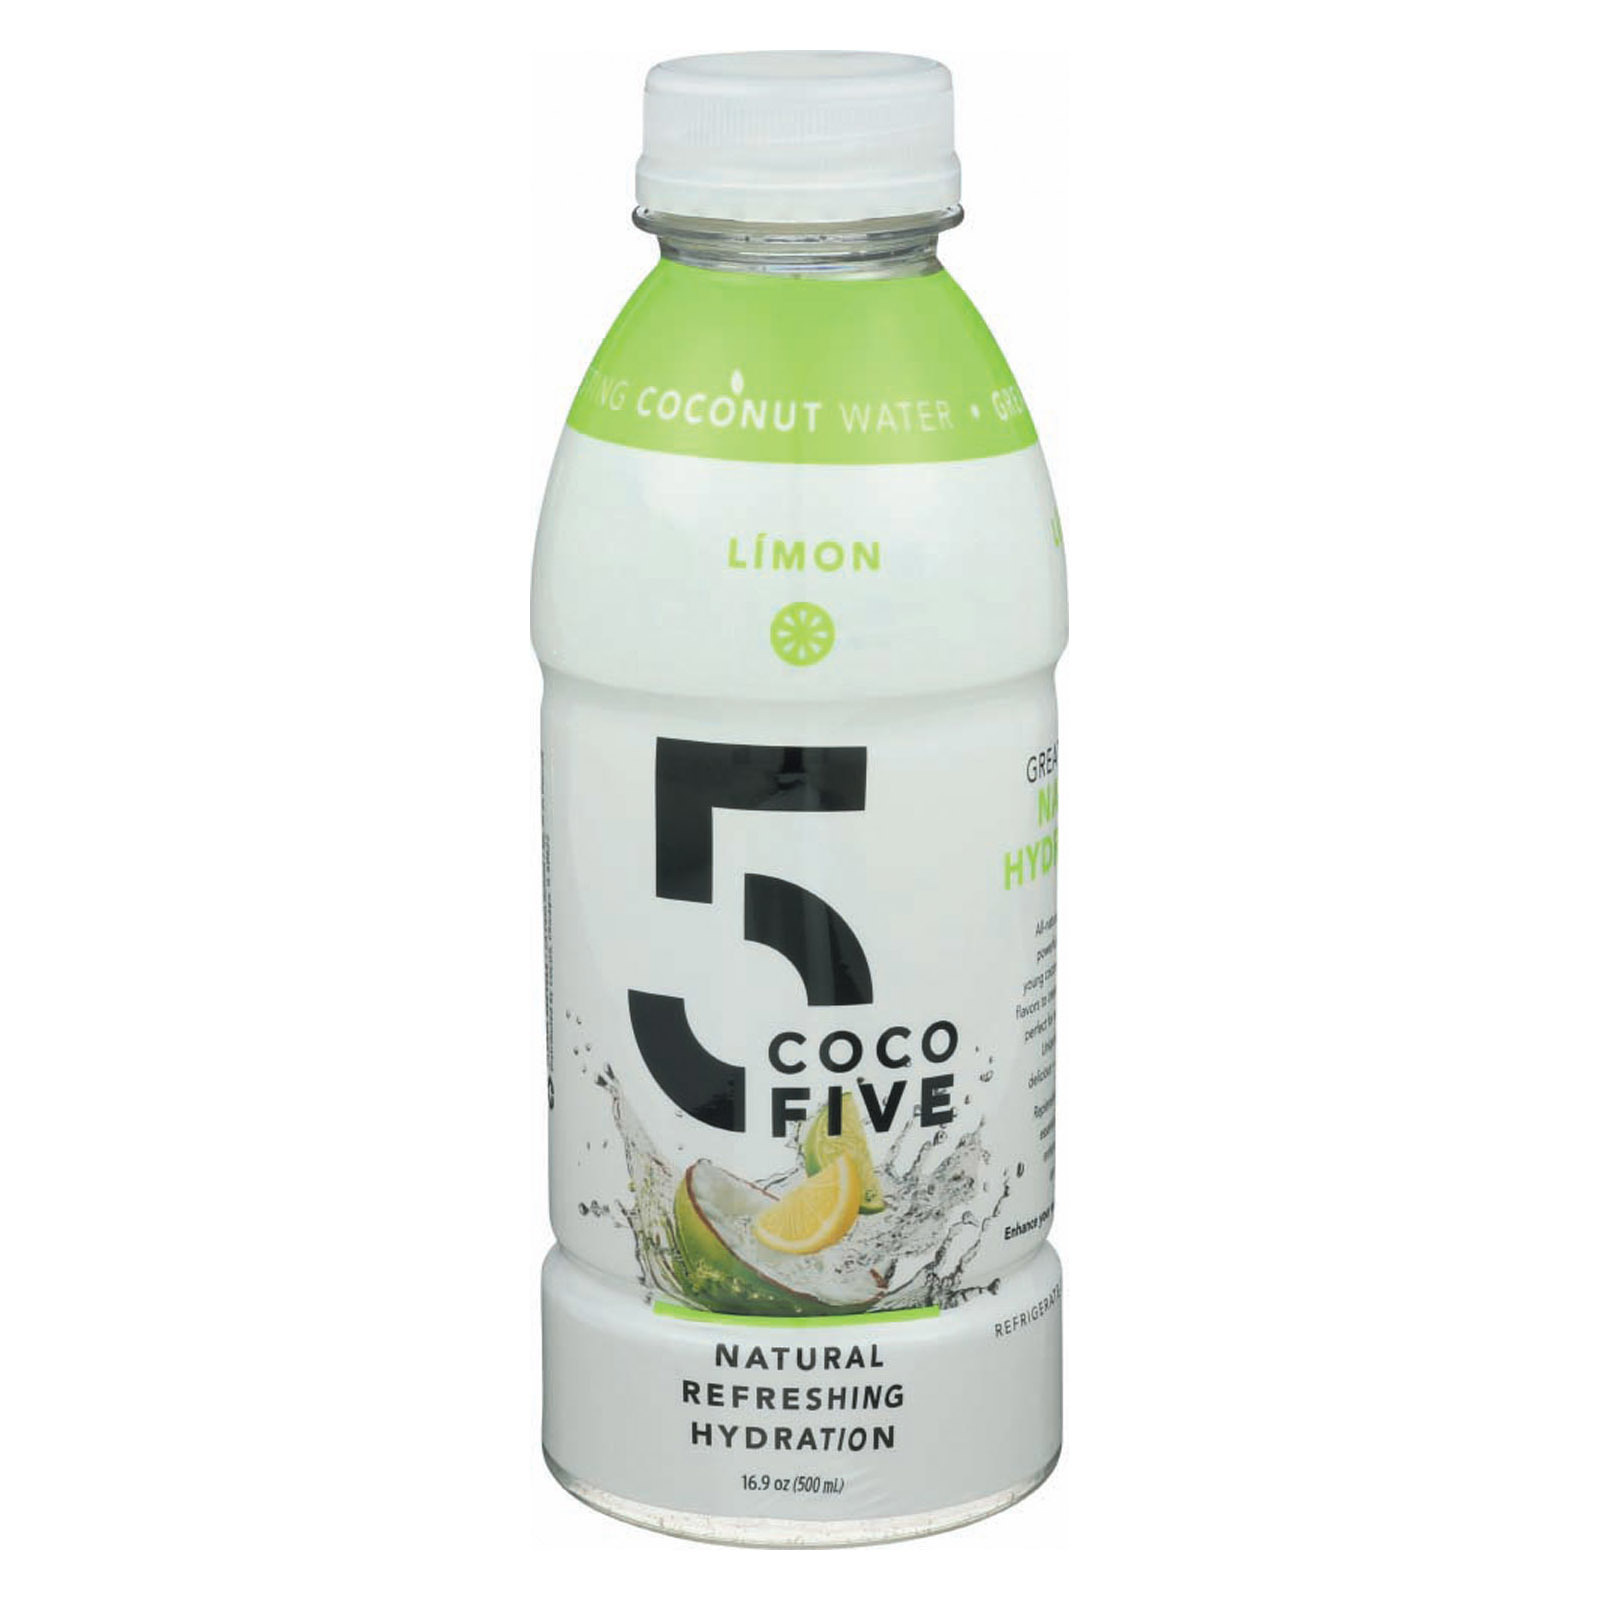 Coco5 Coconut Water - Limon - Case of 12 - 16.9 fl oz